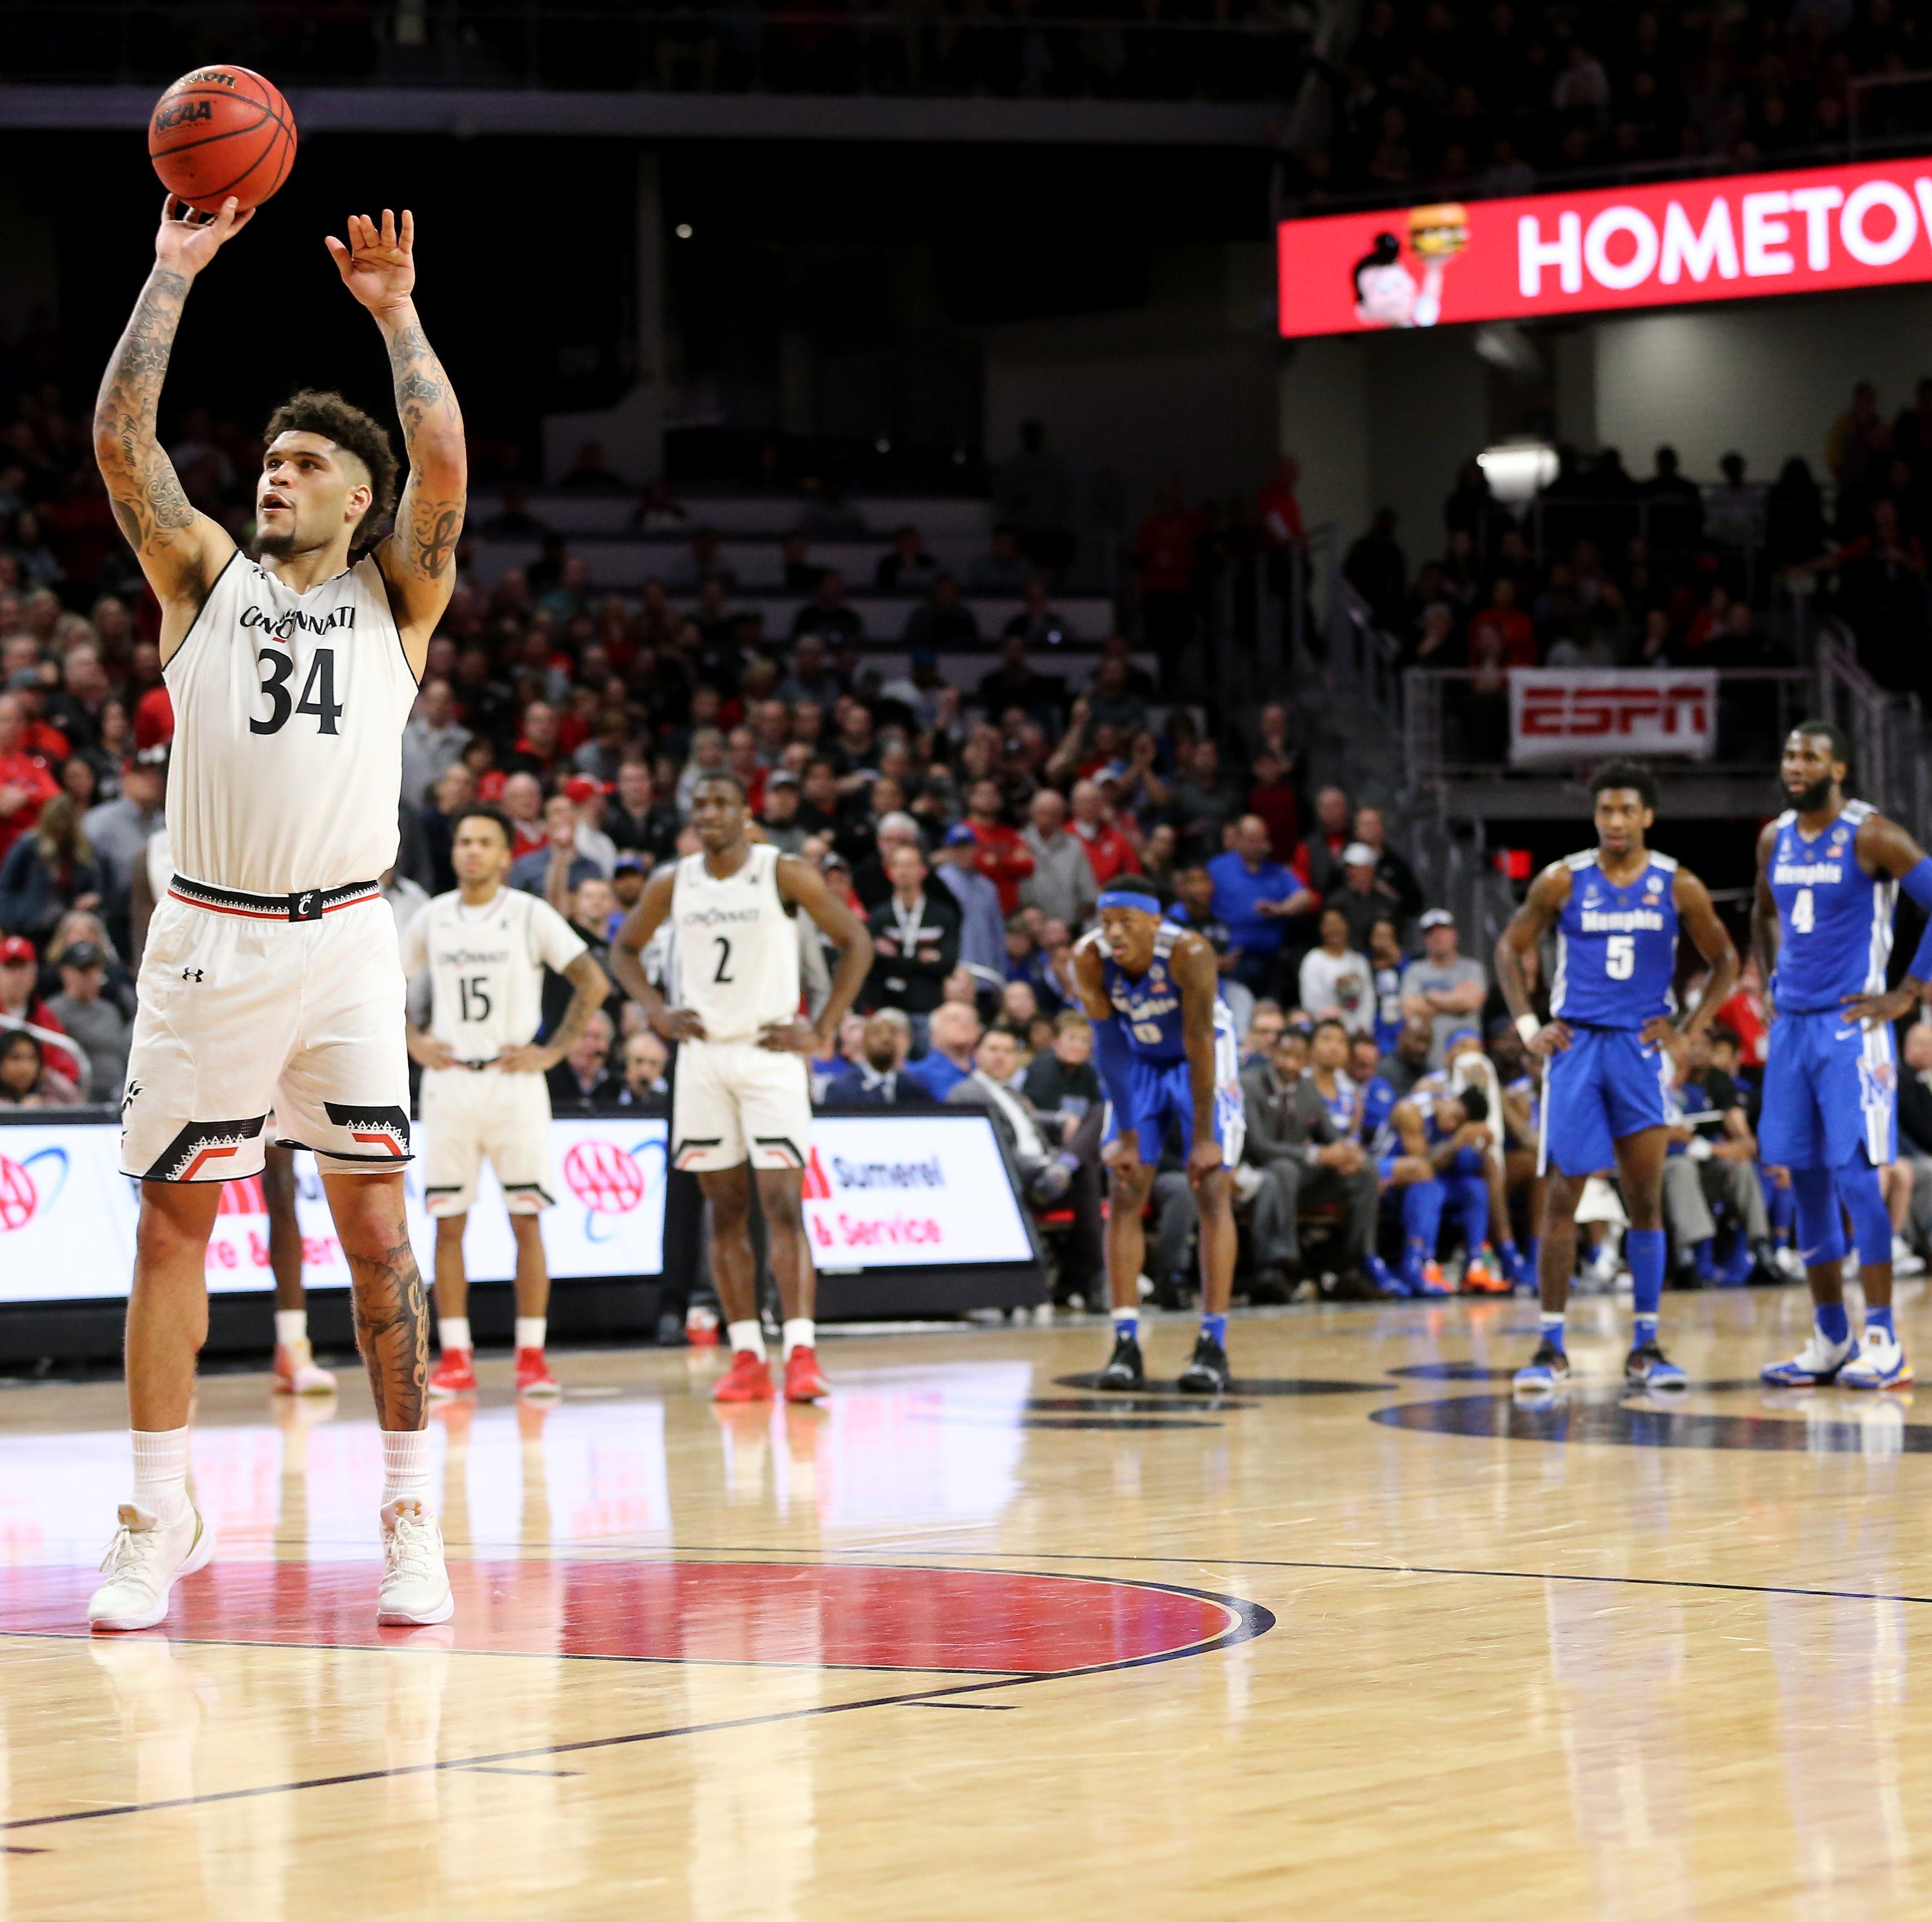 University of Cincinnati Bearcats rise to No. 19 in USA TODAY Coaches poll, 20 in AP poll